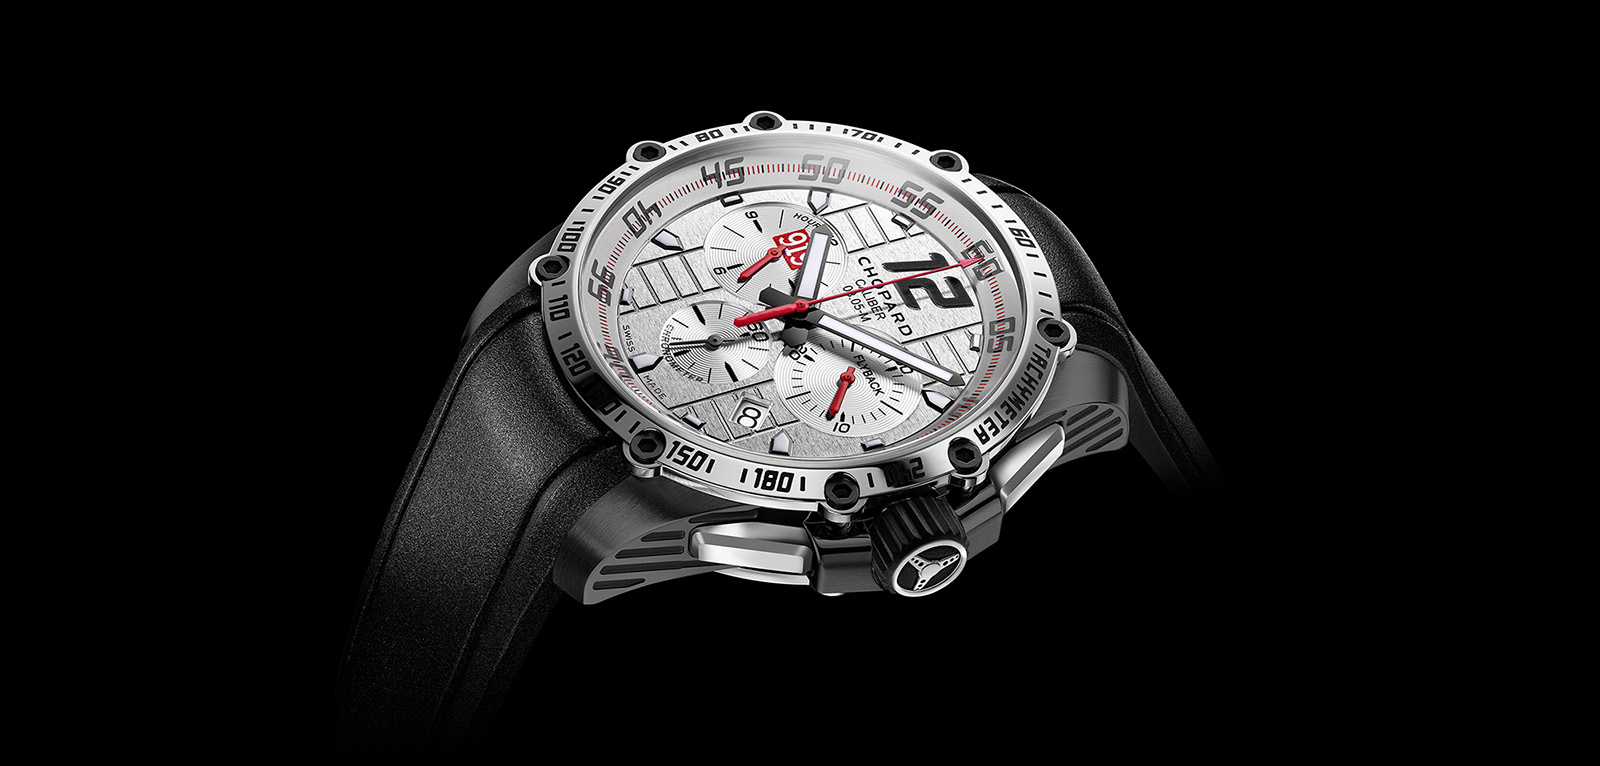 Chopard Superfast Chrono Porsche 919 Only Watch 2015 portada